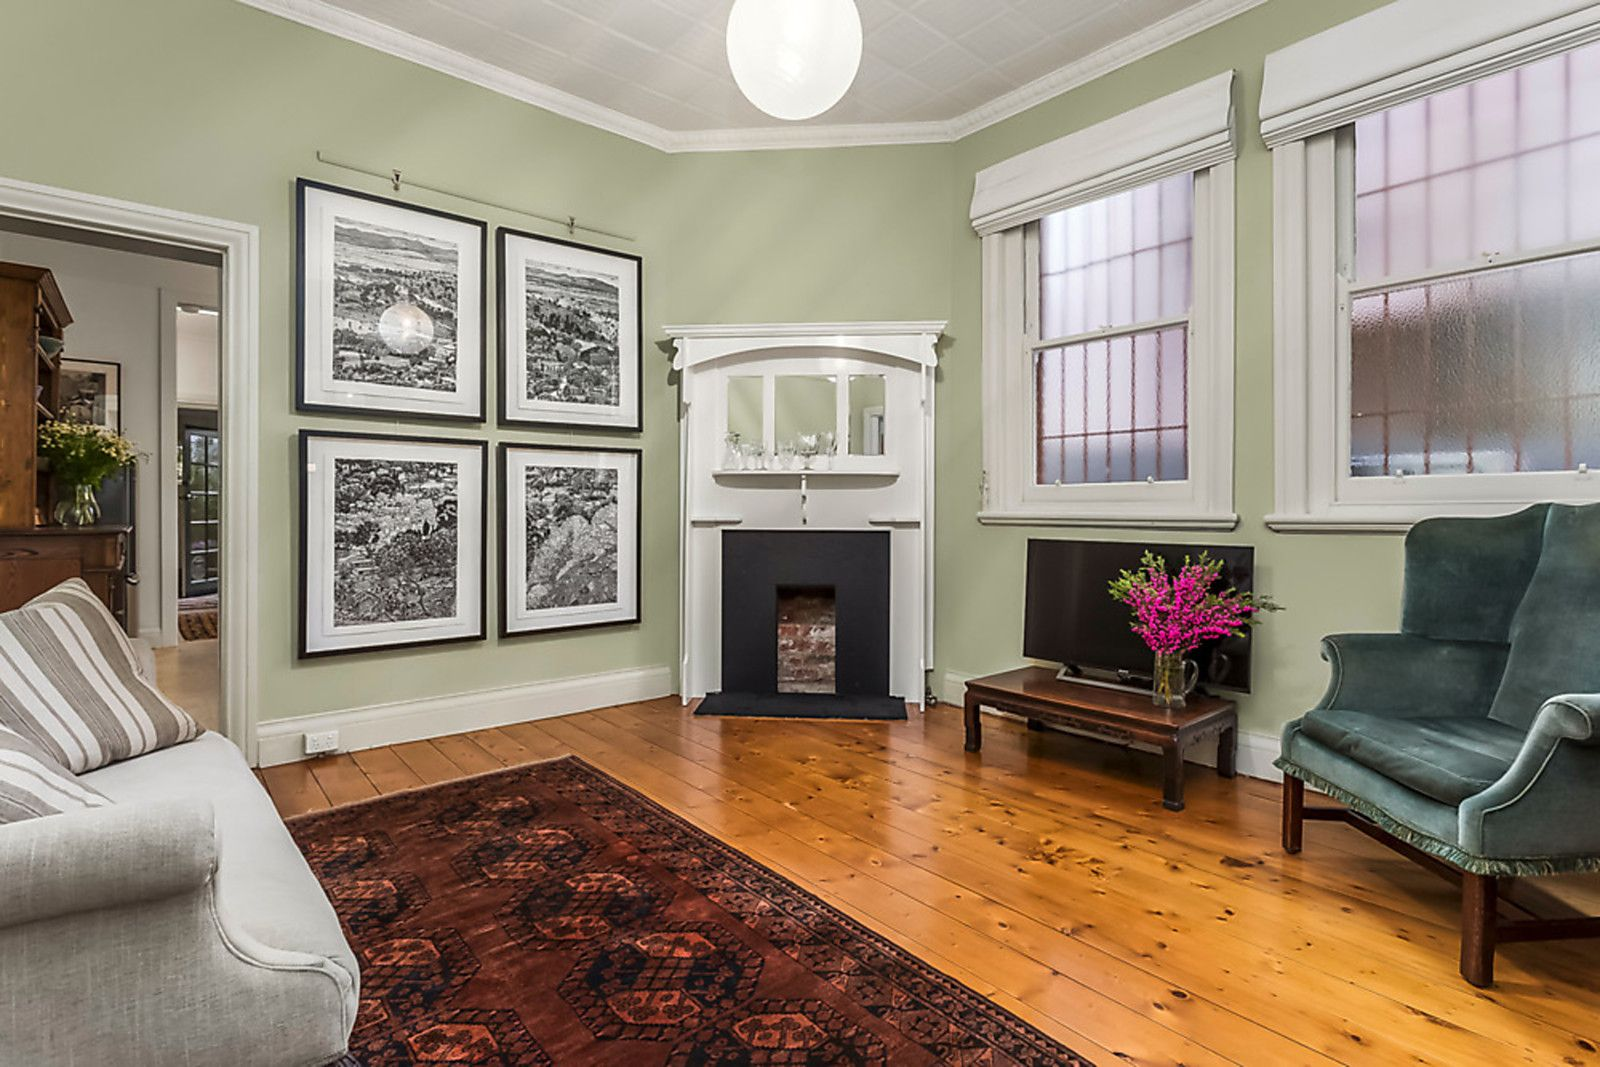 51 &/51A Smith Street, Fitzroy VIC 3065, Image 1